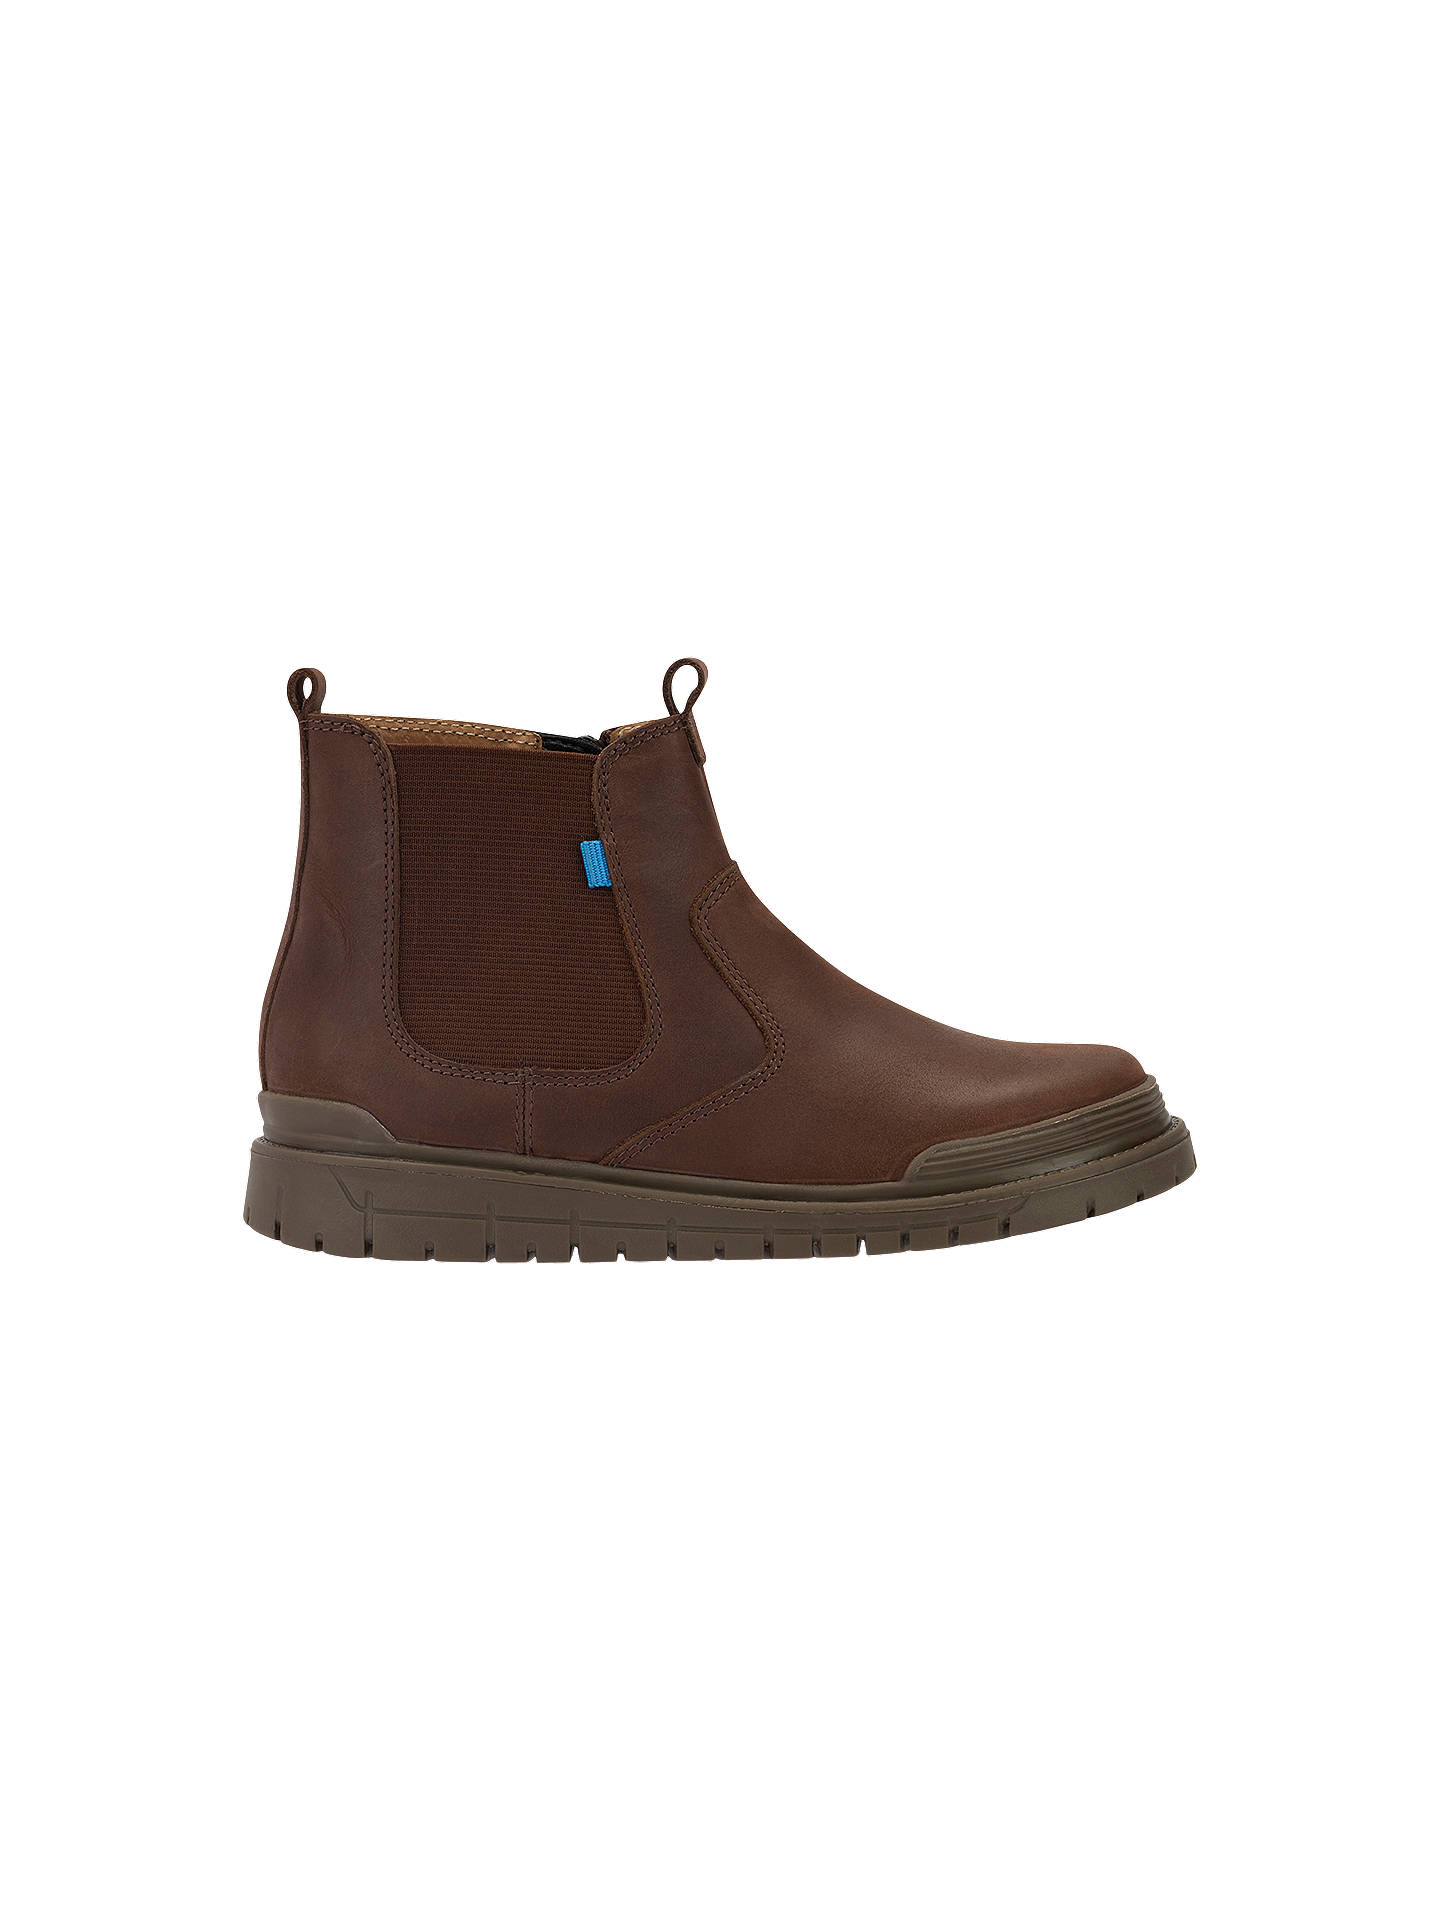 Buy Start-rite Children's Infant Leather Chelsea Boots, Brown, 12.5F Jnr Online at johnlewis.com